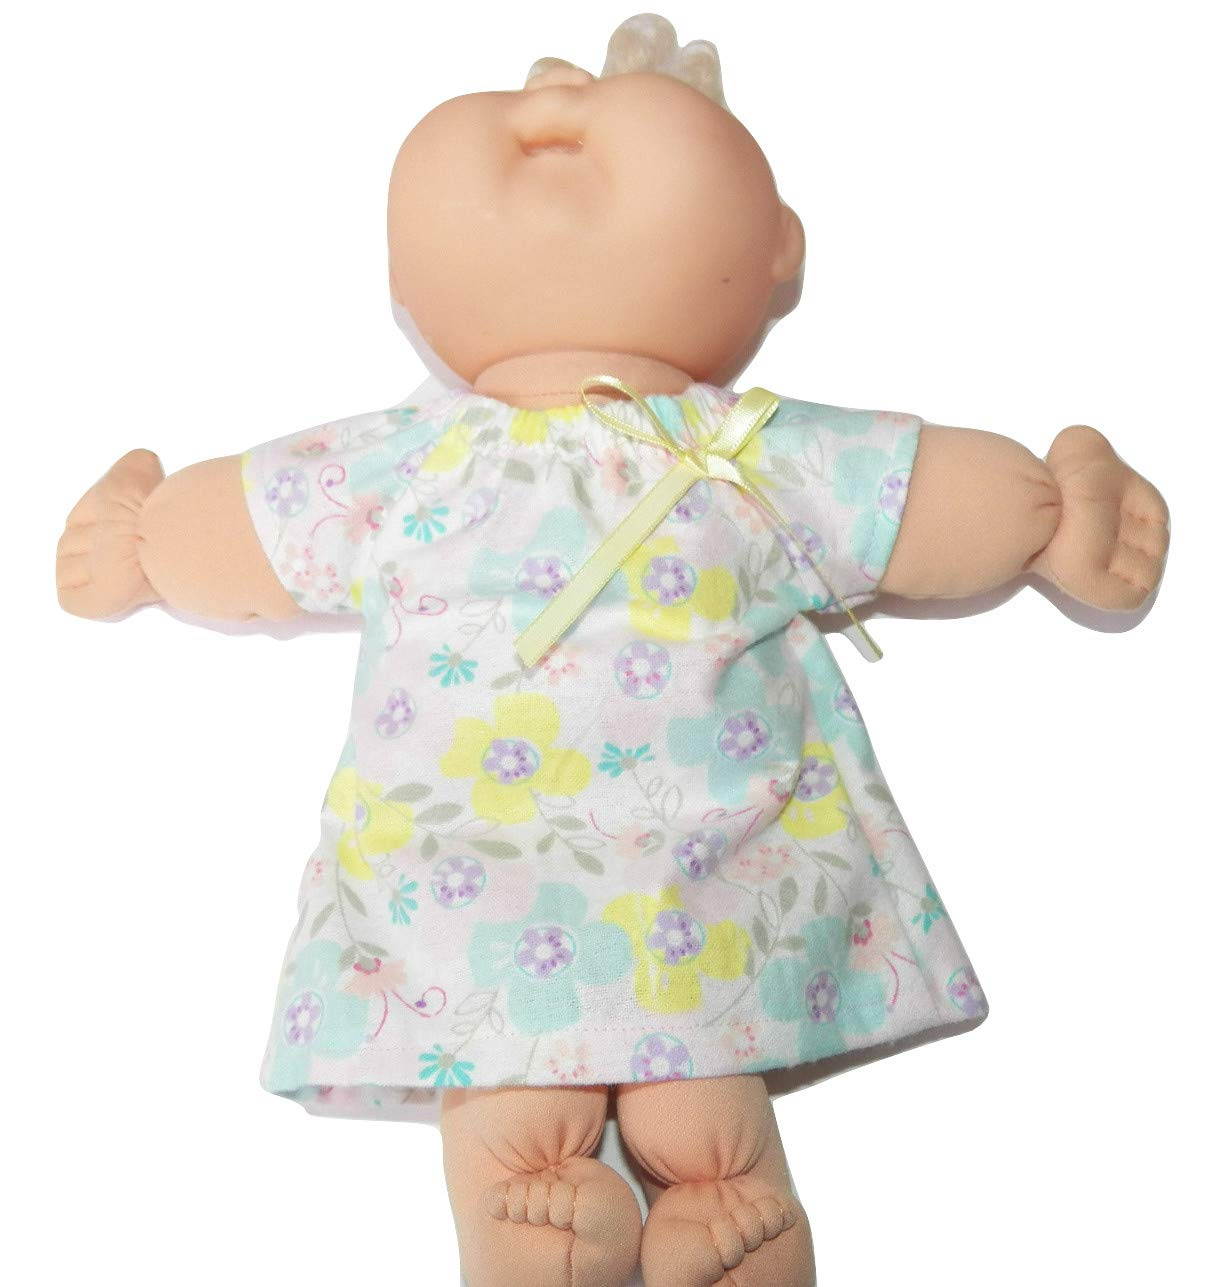 Cabbage Patch Doll Clothes 14 inch Girl or Preemie Size Lavender Floral Nightgown